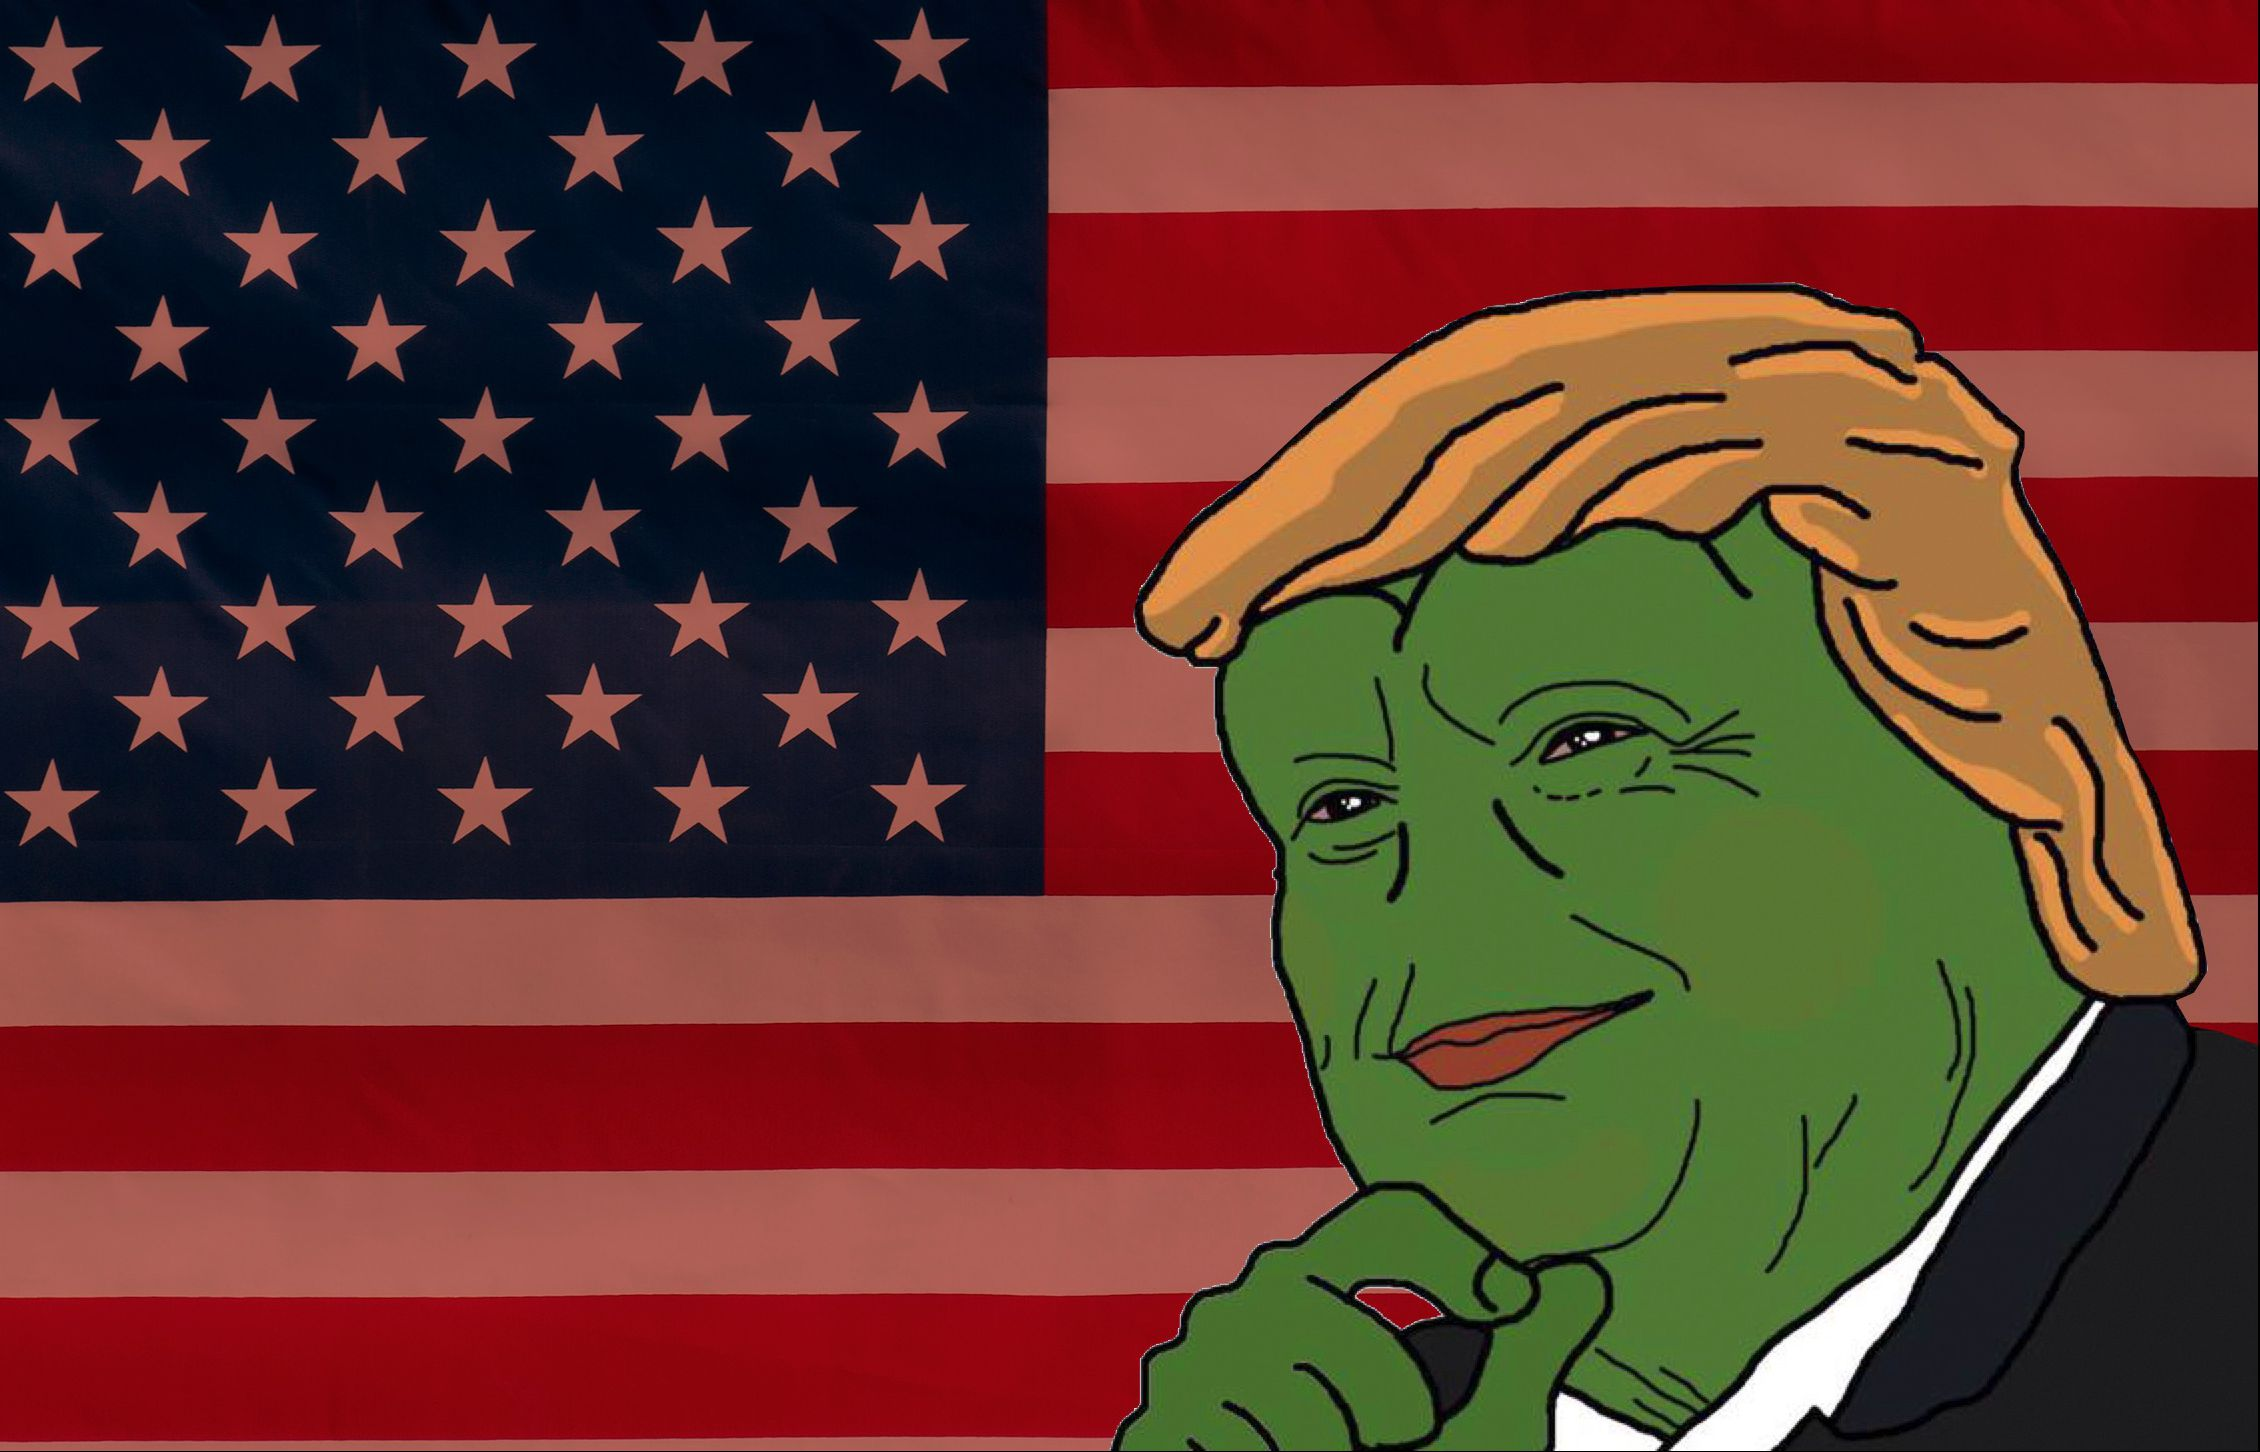 Alt-right, trump, Pepe the frog